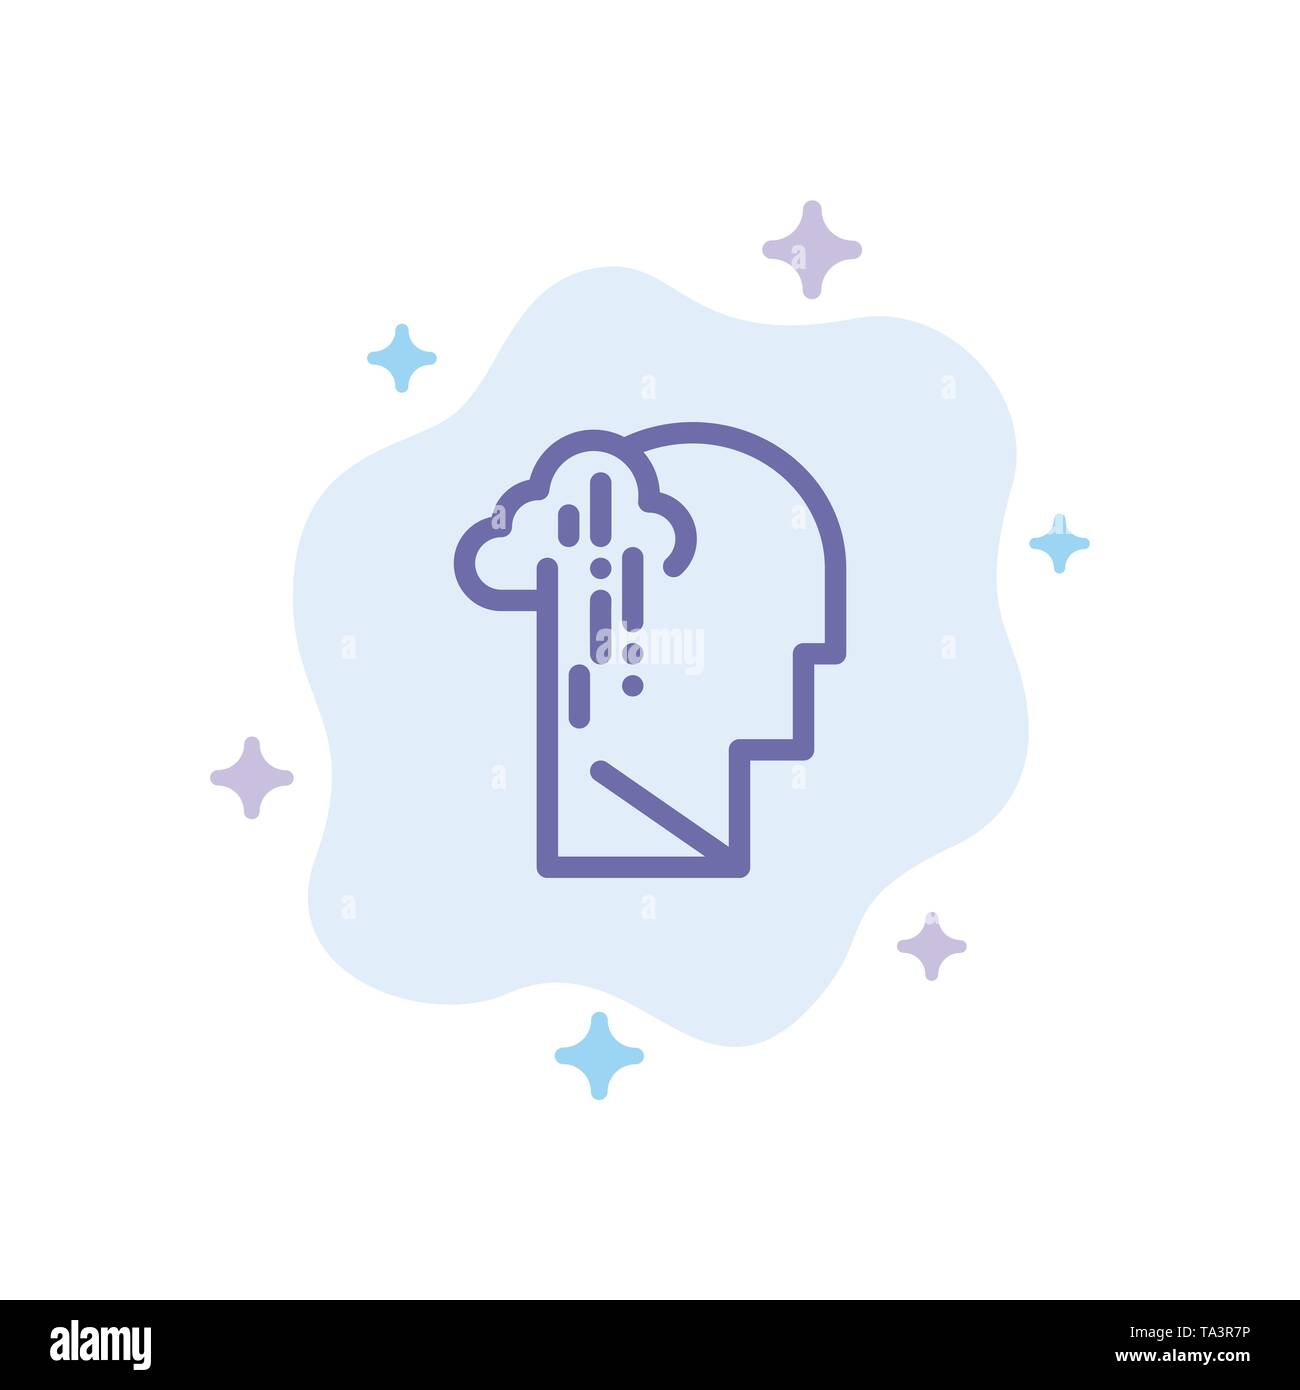 Depression, Grief, Human, Melancholy, Sad Blue Icon on Abstract Cloud Background - Stock Vector